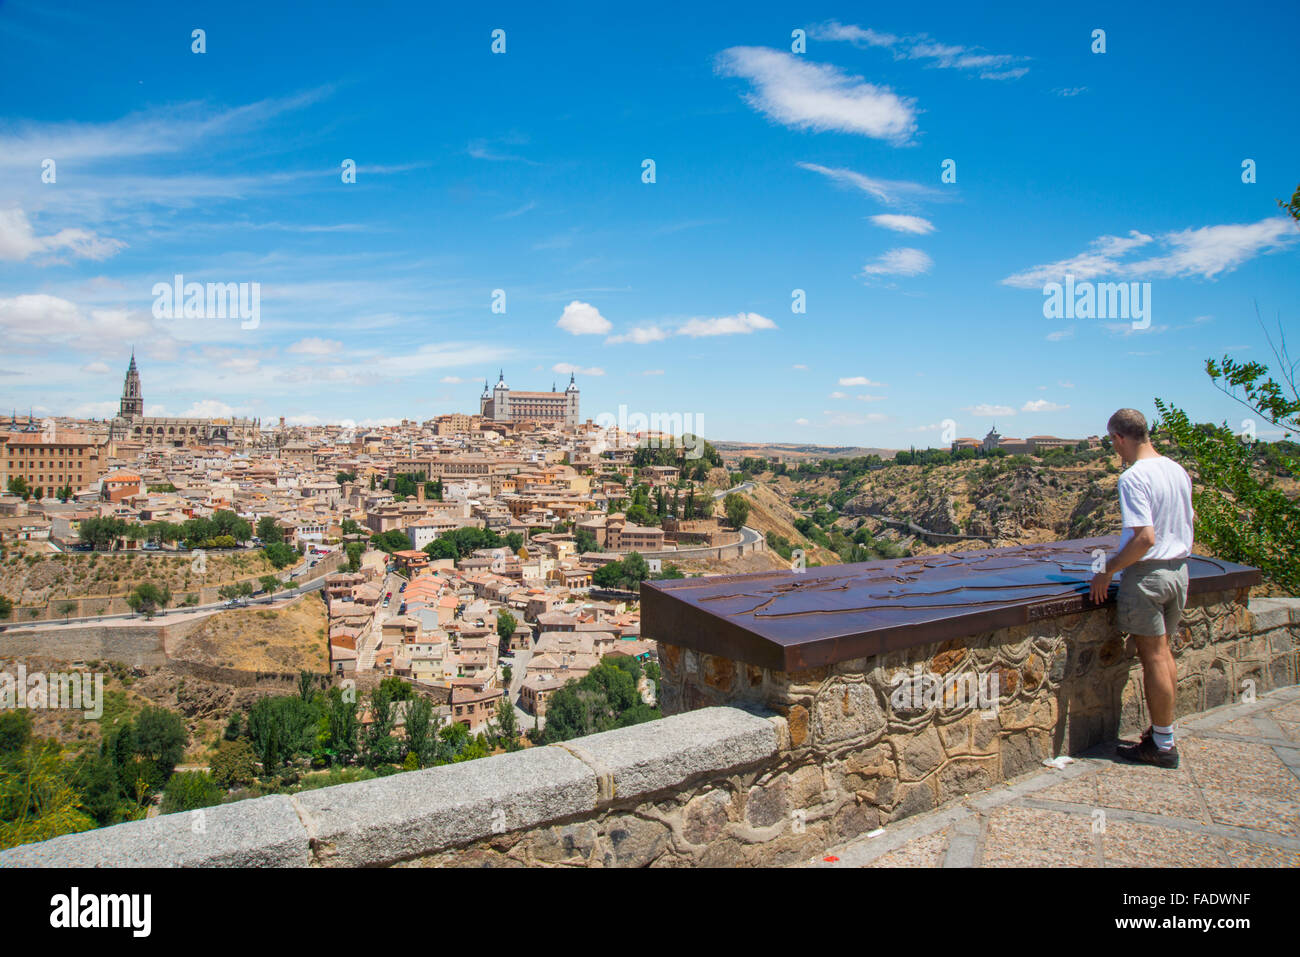 Man at the viewpoint and overview of the town. Toledo, Spain. - Stock Image